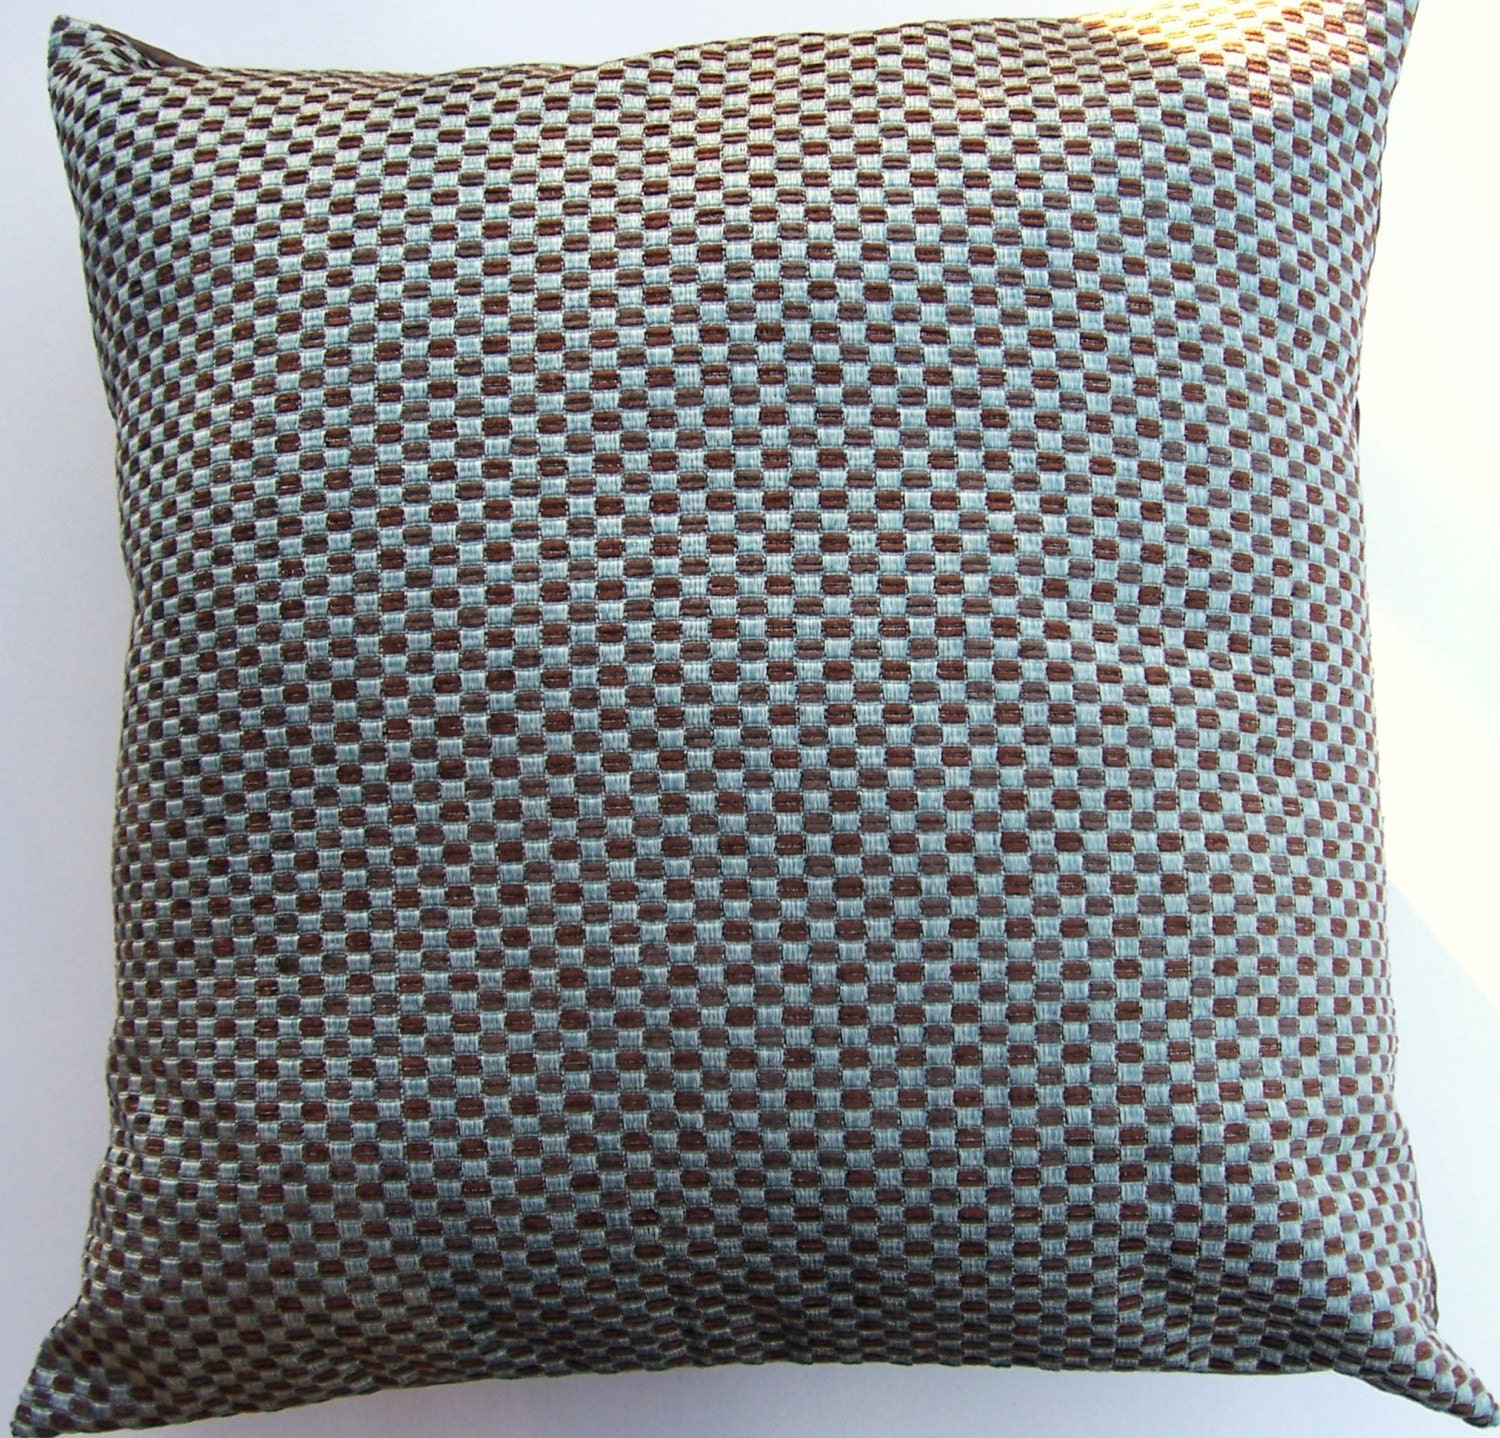 Spa Blue and Brown Throw Pillow Cover Woven Cushion Cover